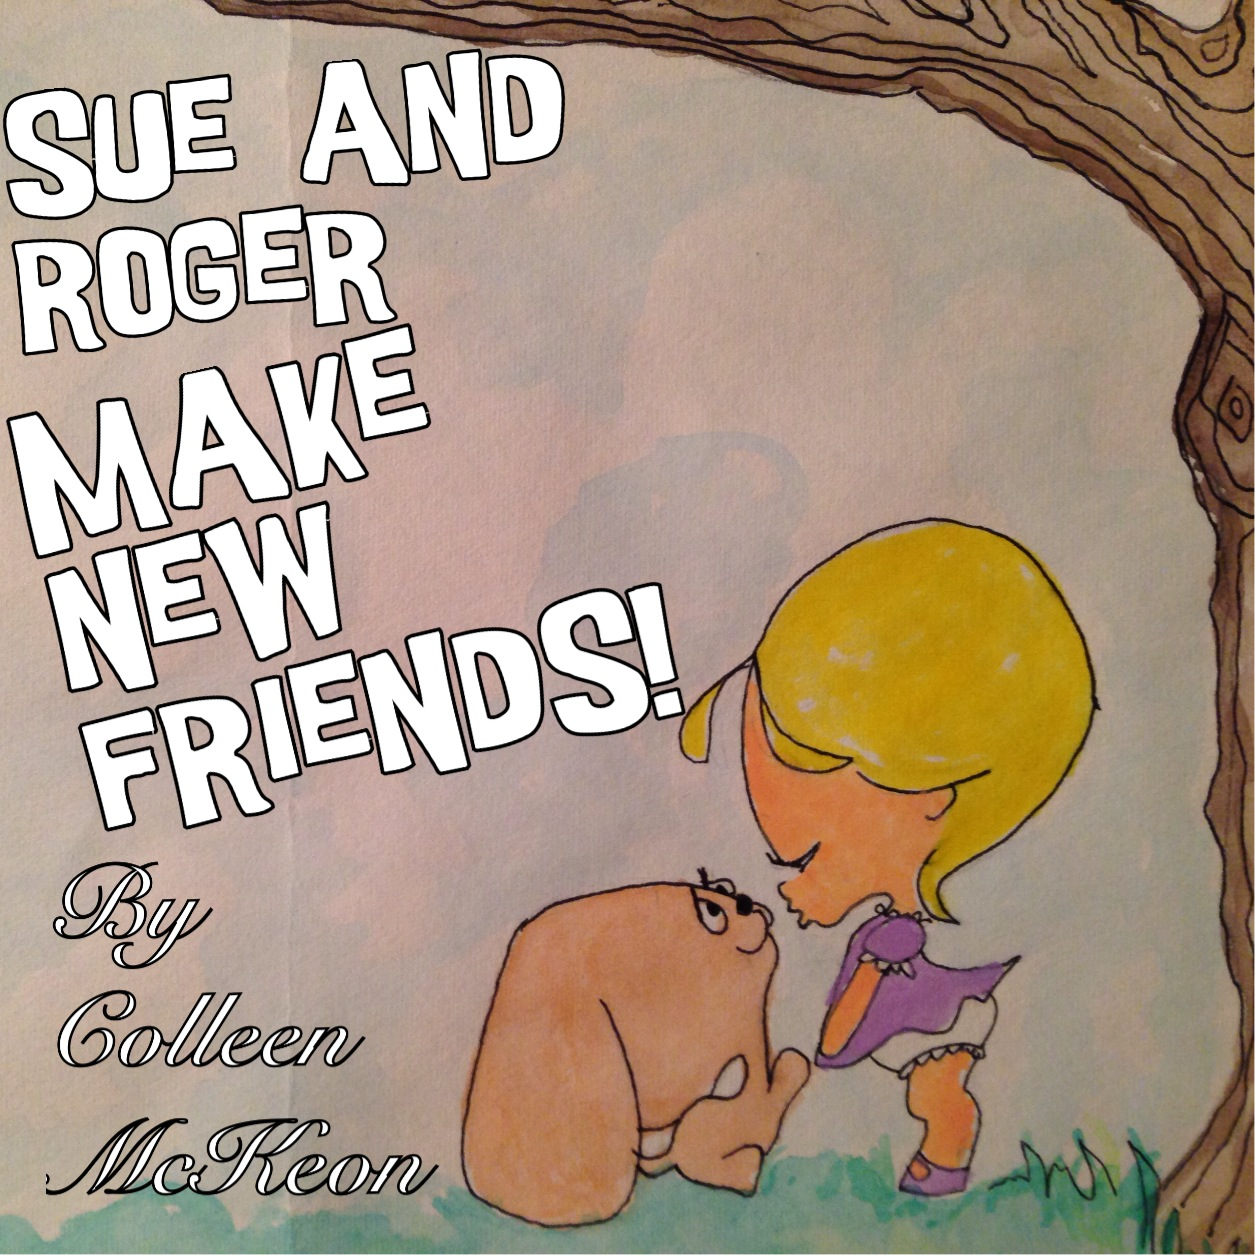 """SUE AND ROGER MAKE NEW FRIENDS!"""